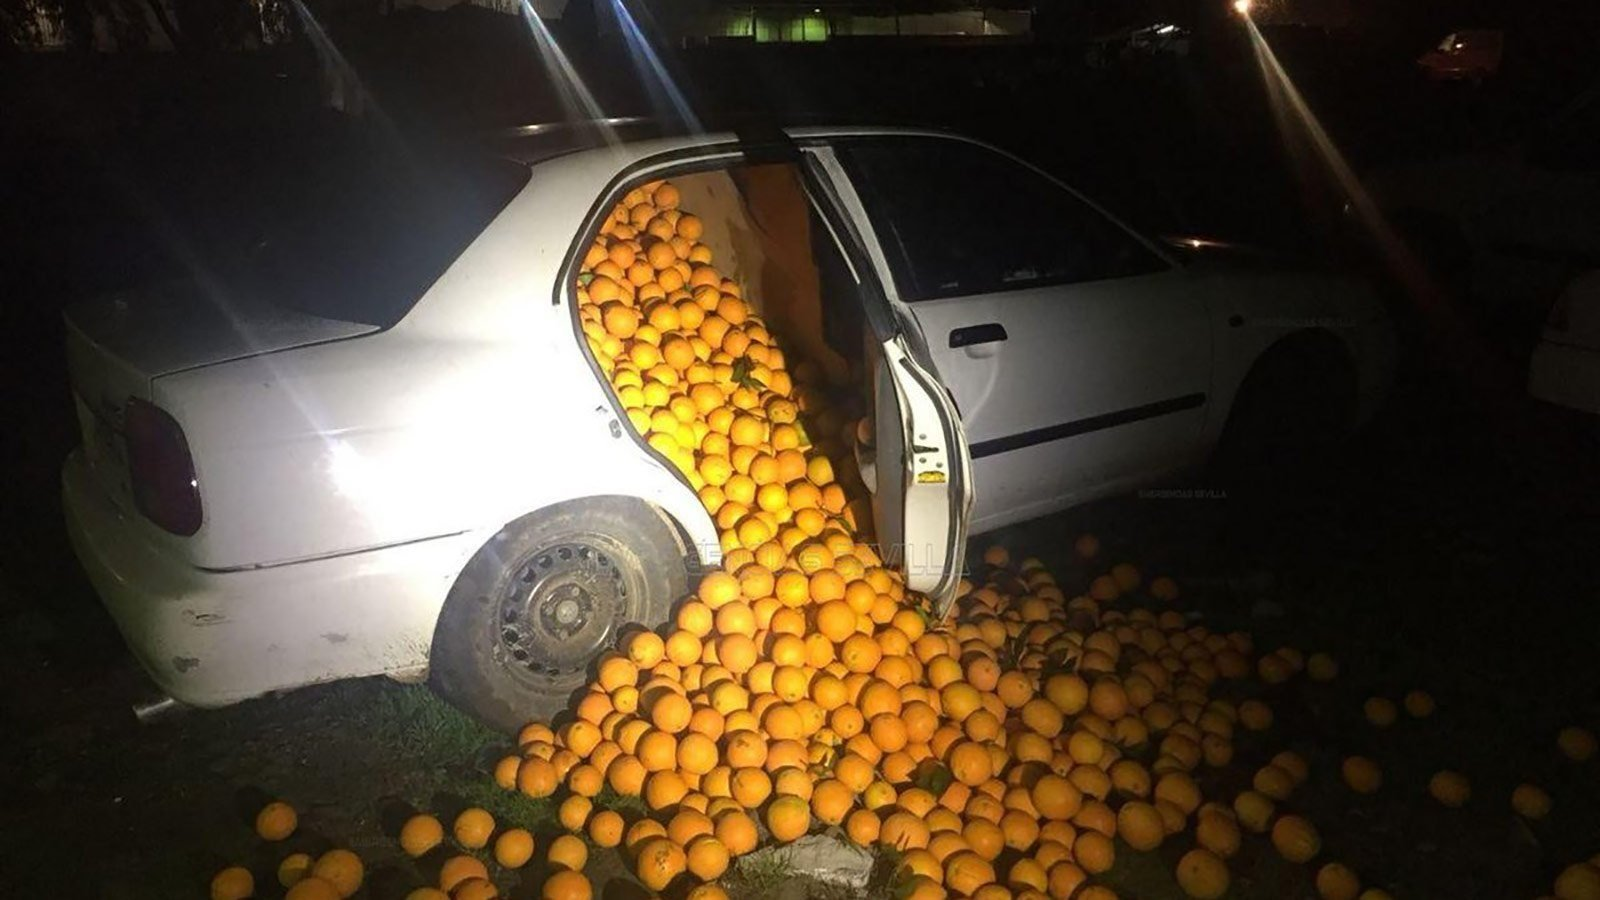 Spain: Authorities Recover Four Tons of Stolen Oranges